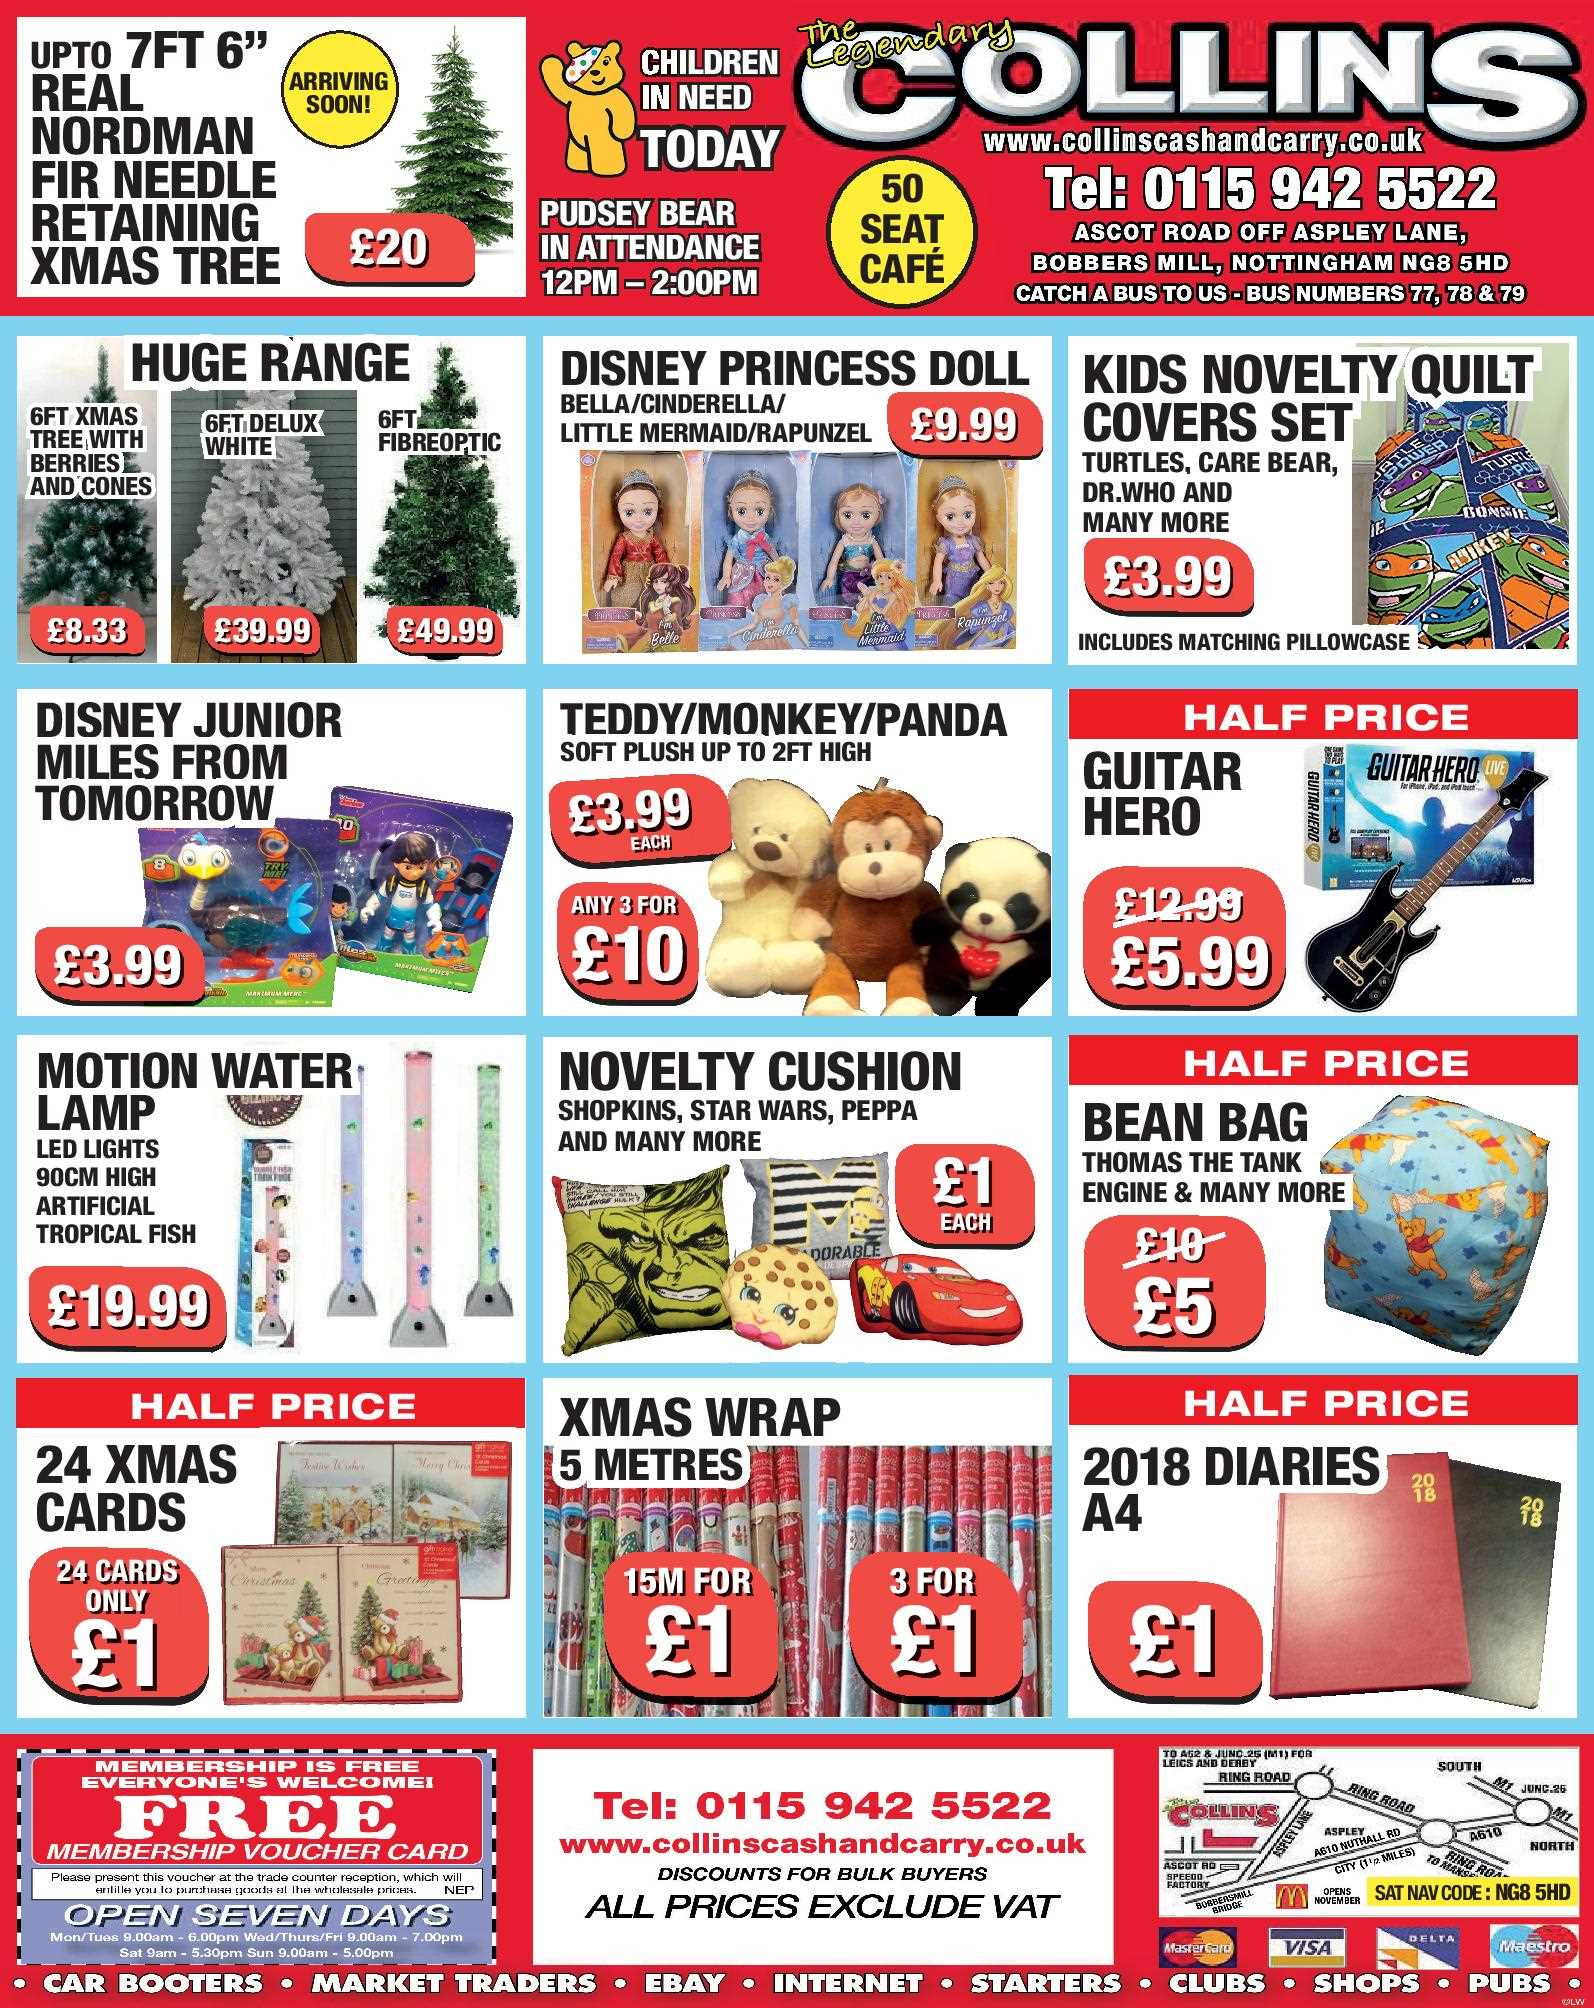 Nottingham Collins Cash and Carry Special Deals from 17-11-2017